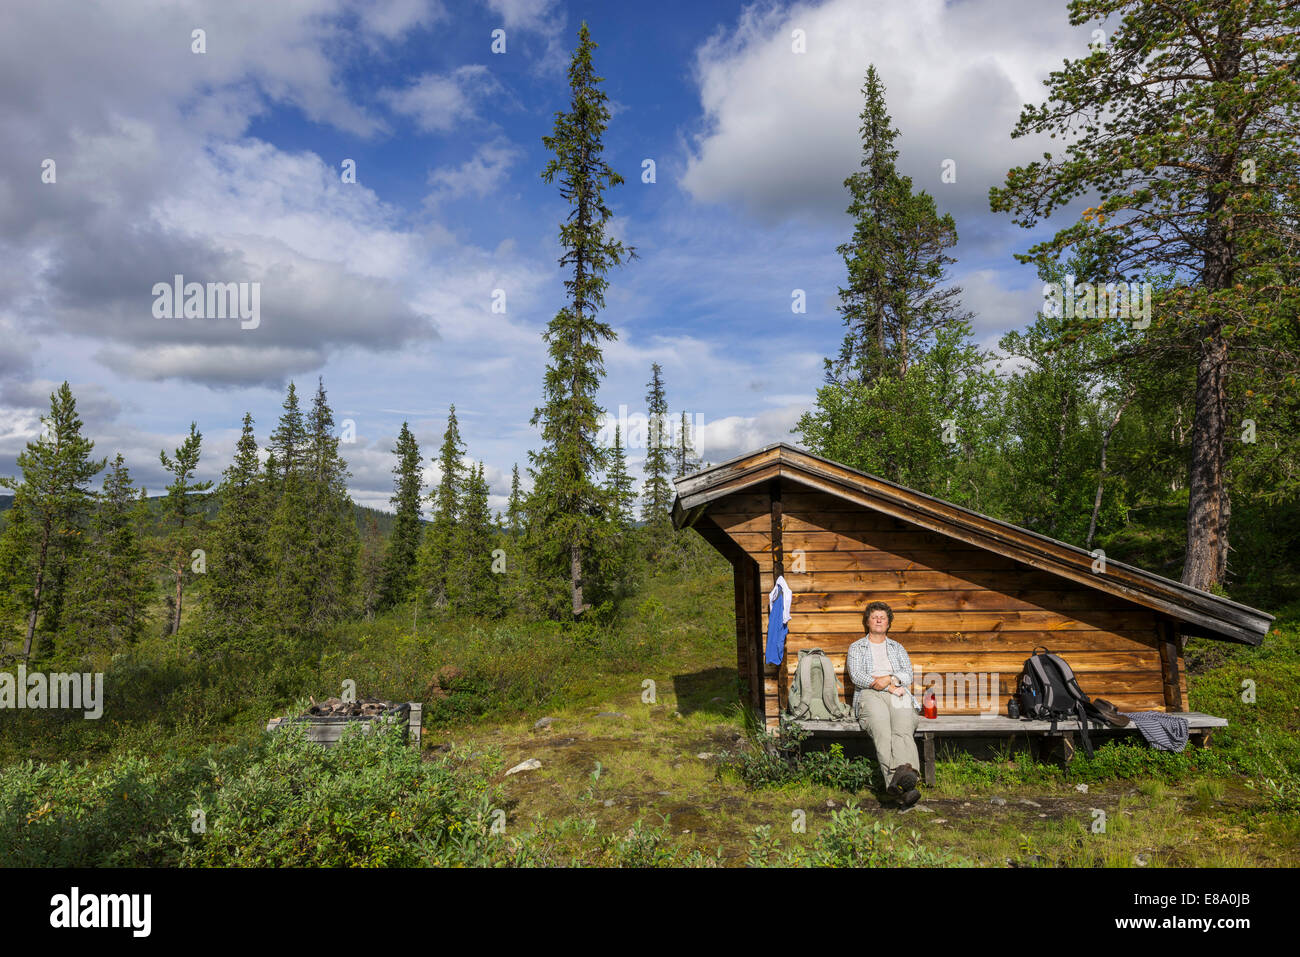 Woman resting at a wind shelter and campsite, Norrbotten County, Sweden - Stock Image